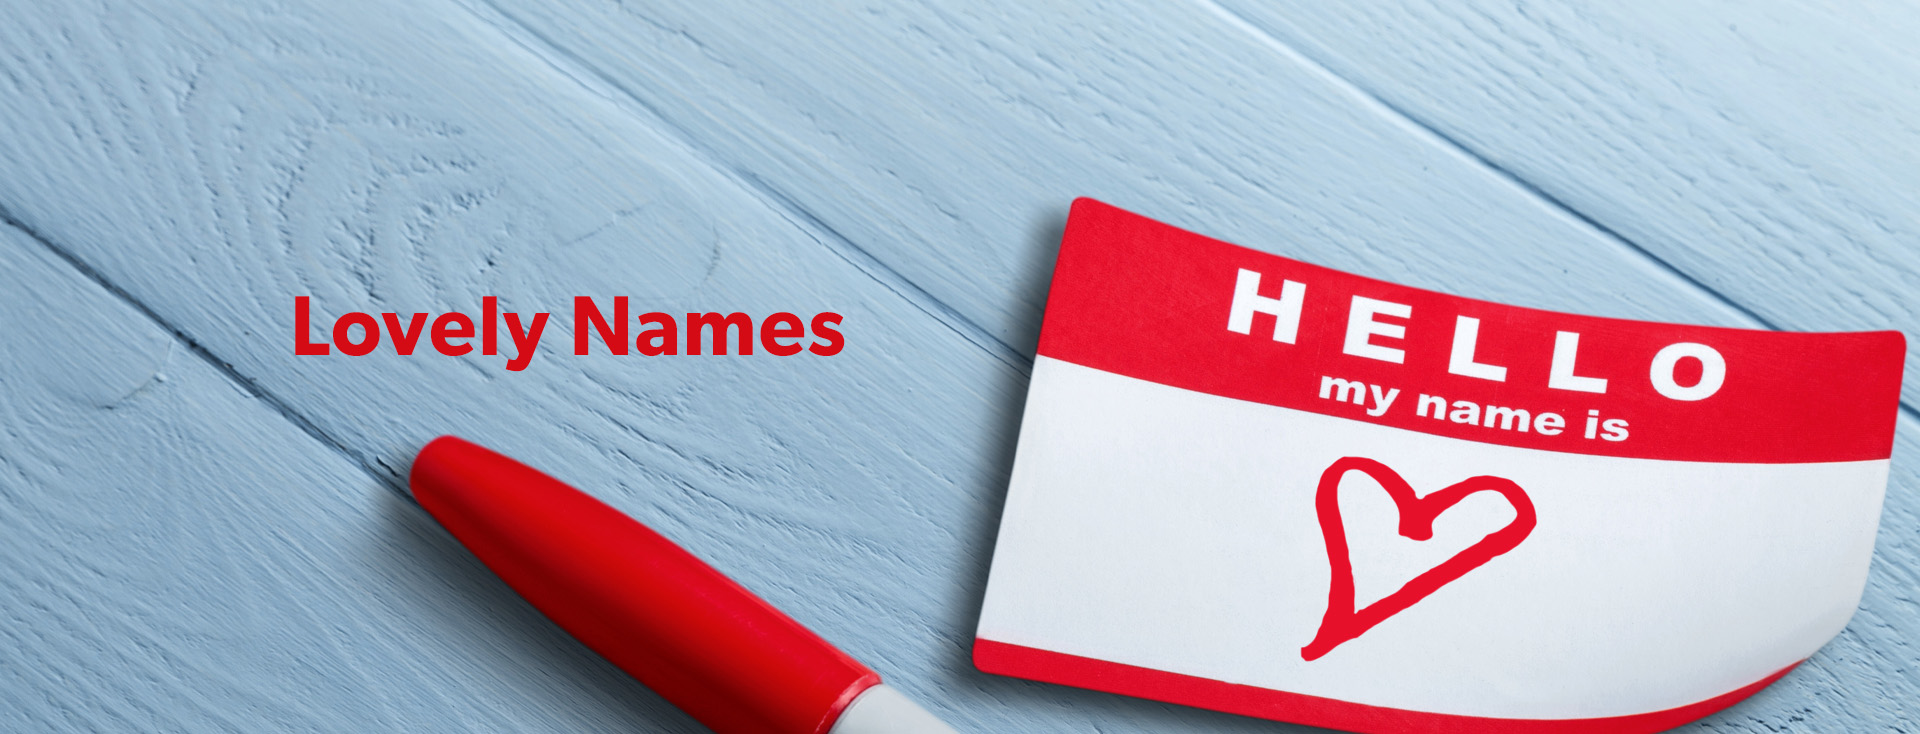 "Lovely Names: Why ""love"" is in the name of certain things"